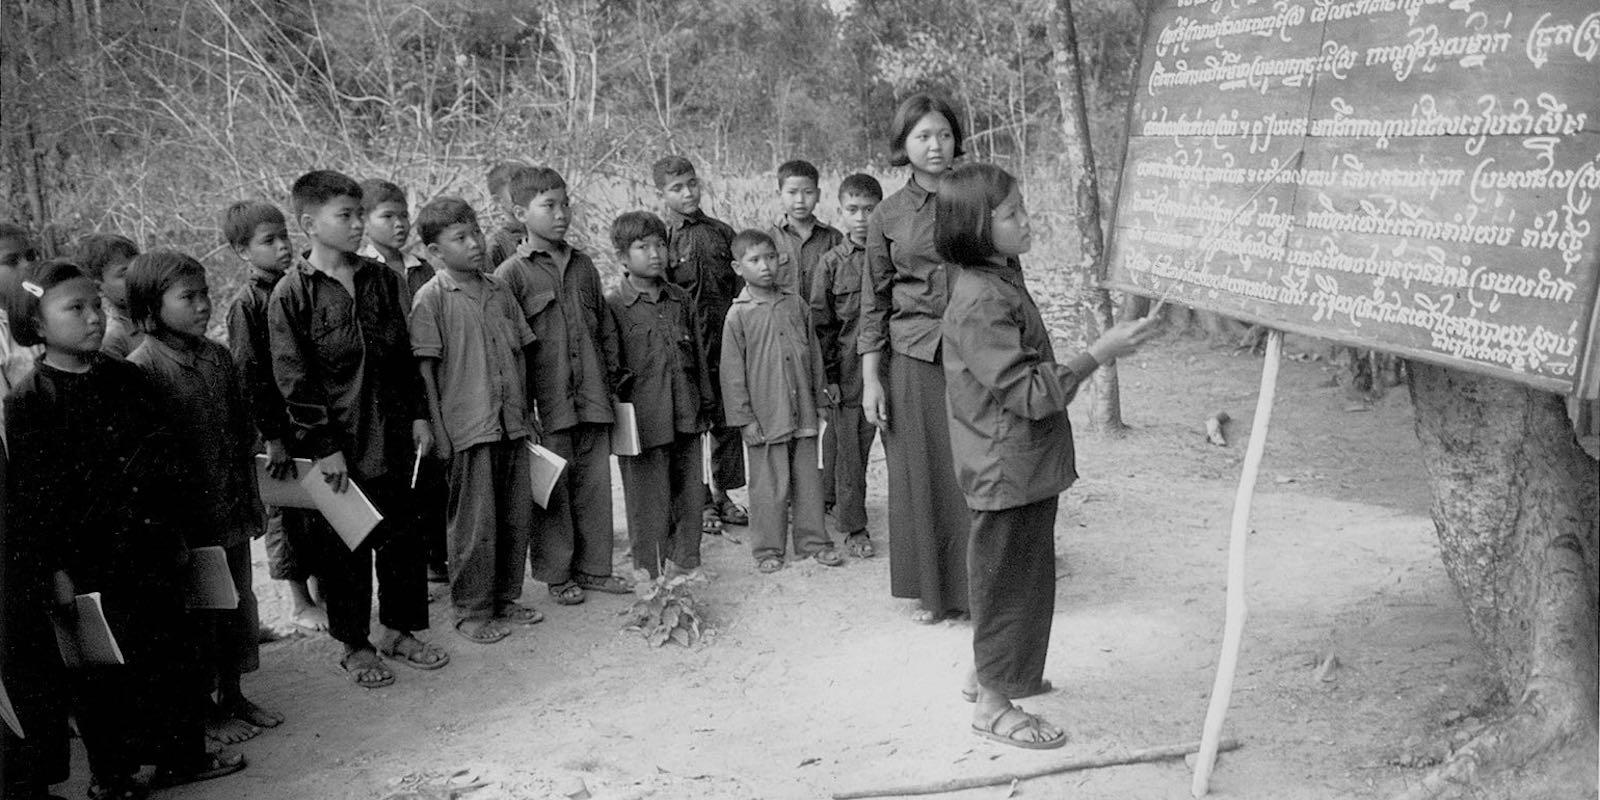 cambodia and the communist guerrilla organization khmer rouge The khmer rouge took control in cambodia in the 1970s  but the communist group's actions caused famines  how did this guerrilla movement rise to power in the.